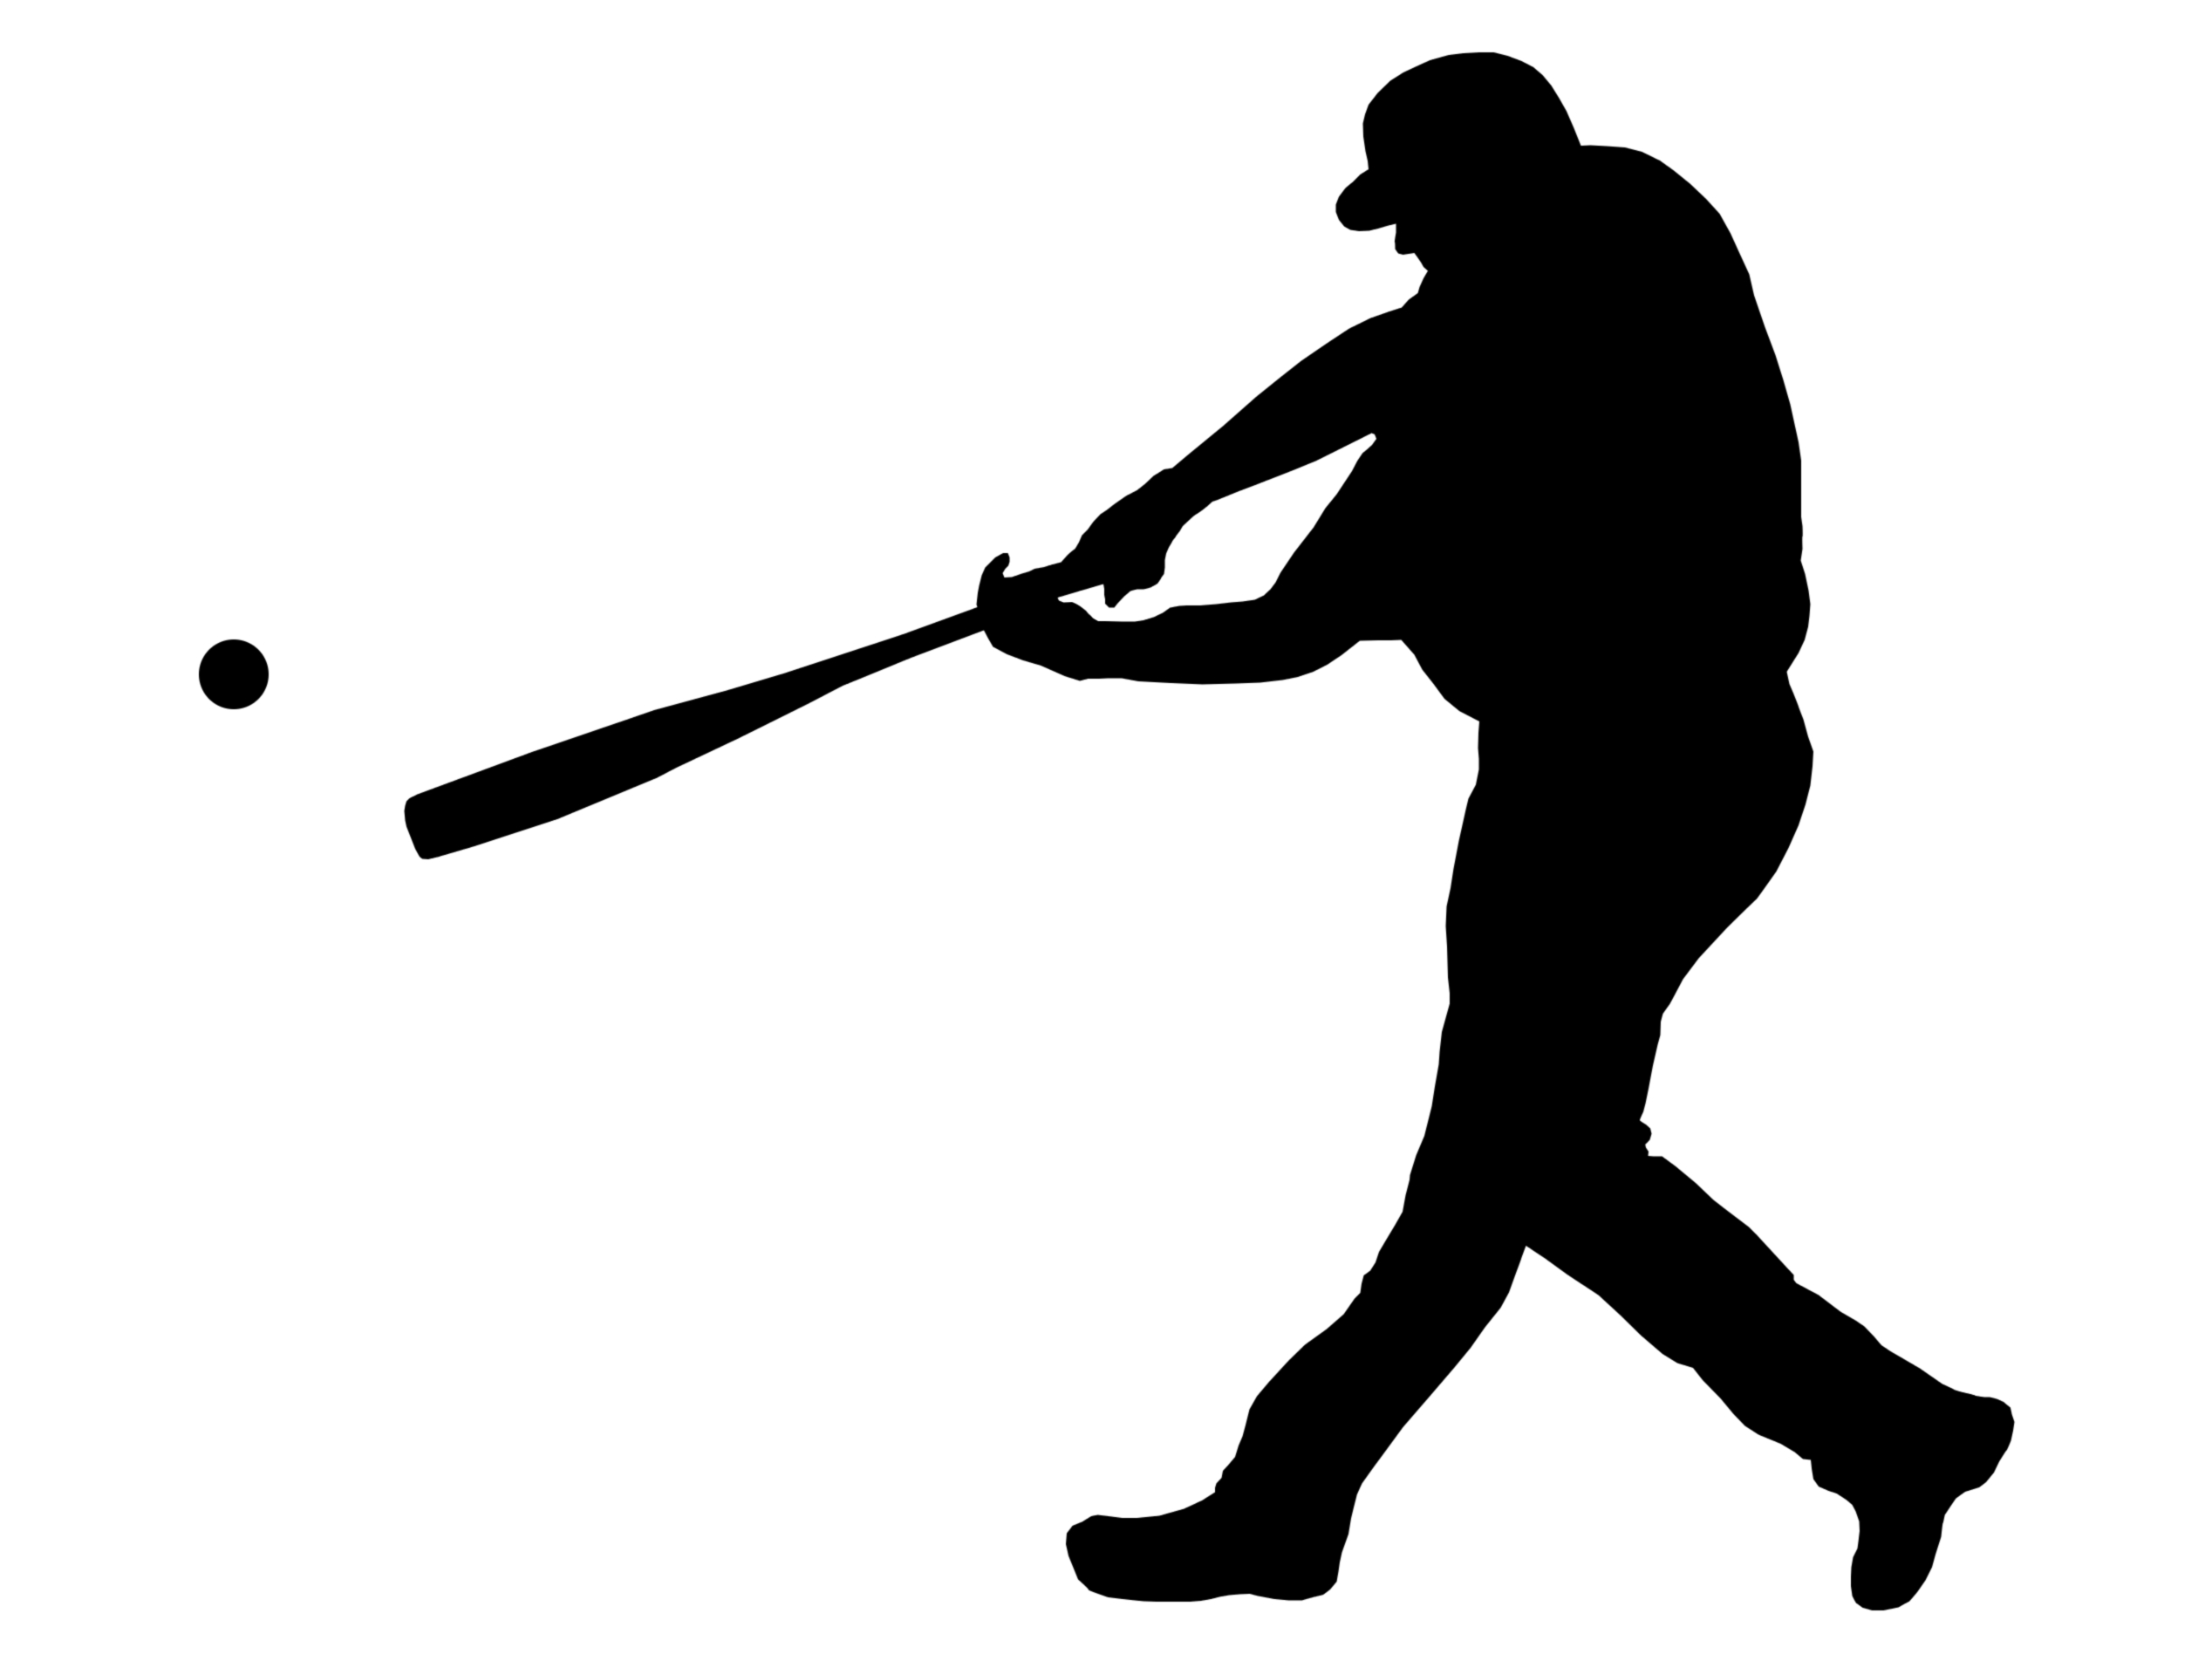 free clipart baseball player silhouette - photo #10